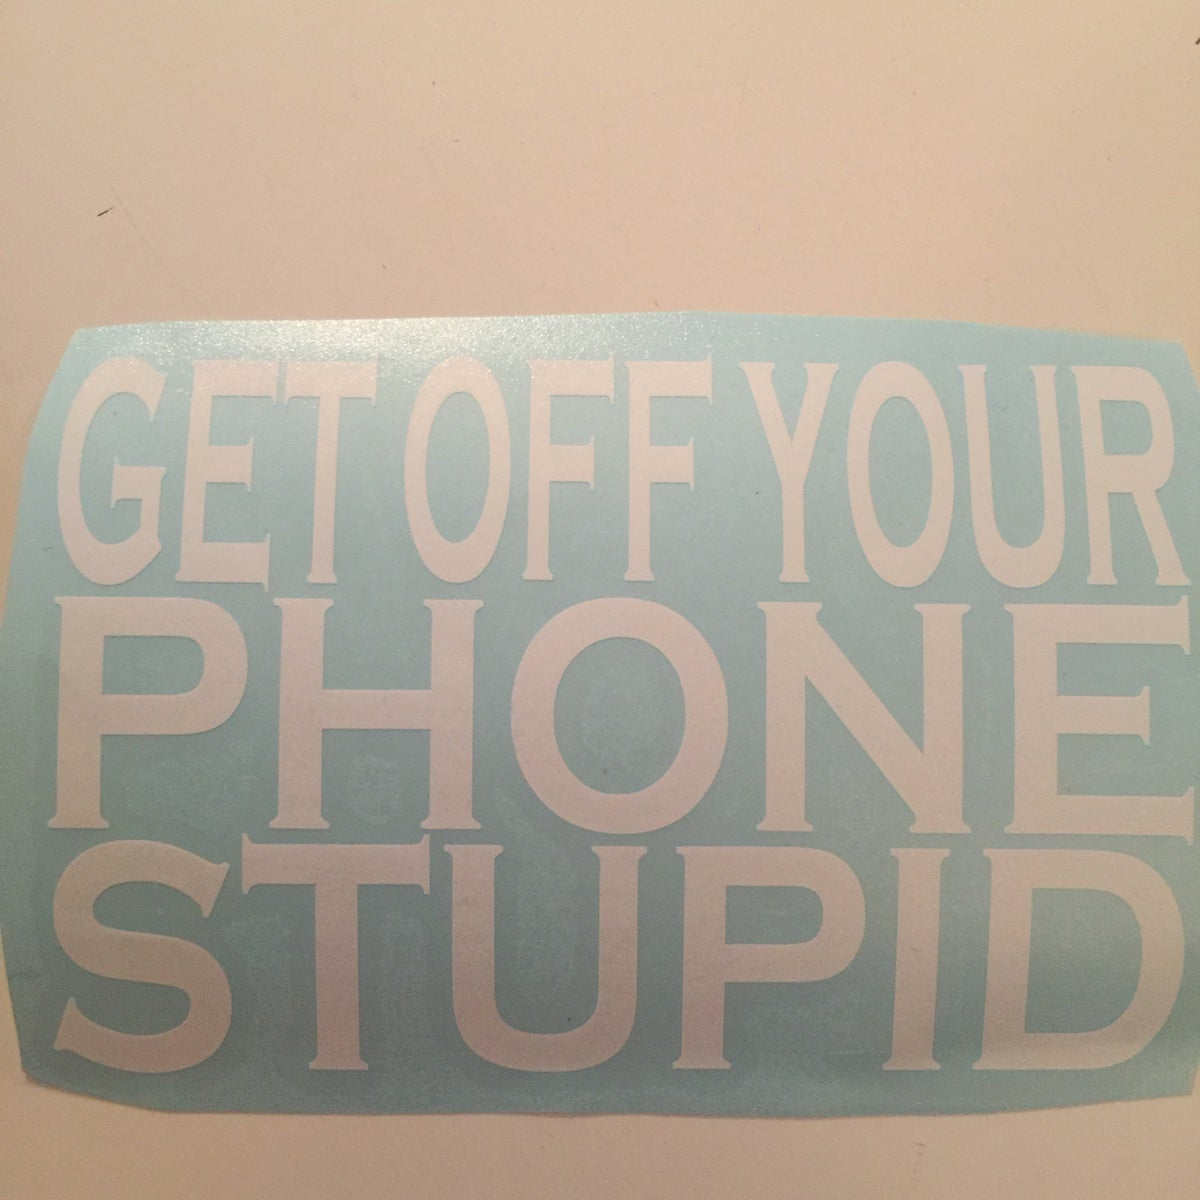 Image of Get Off Your Phone Decal